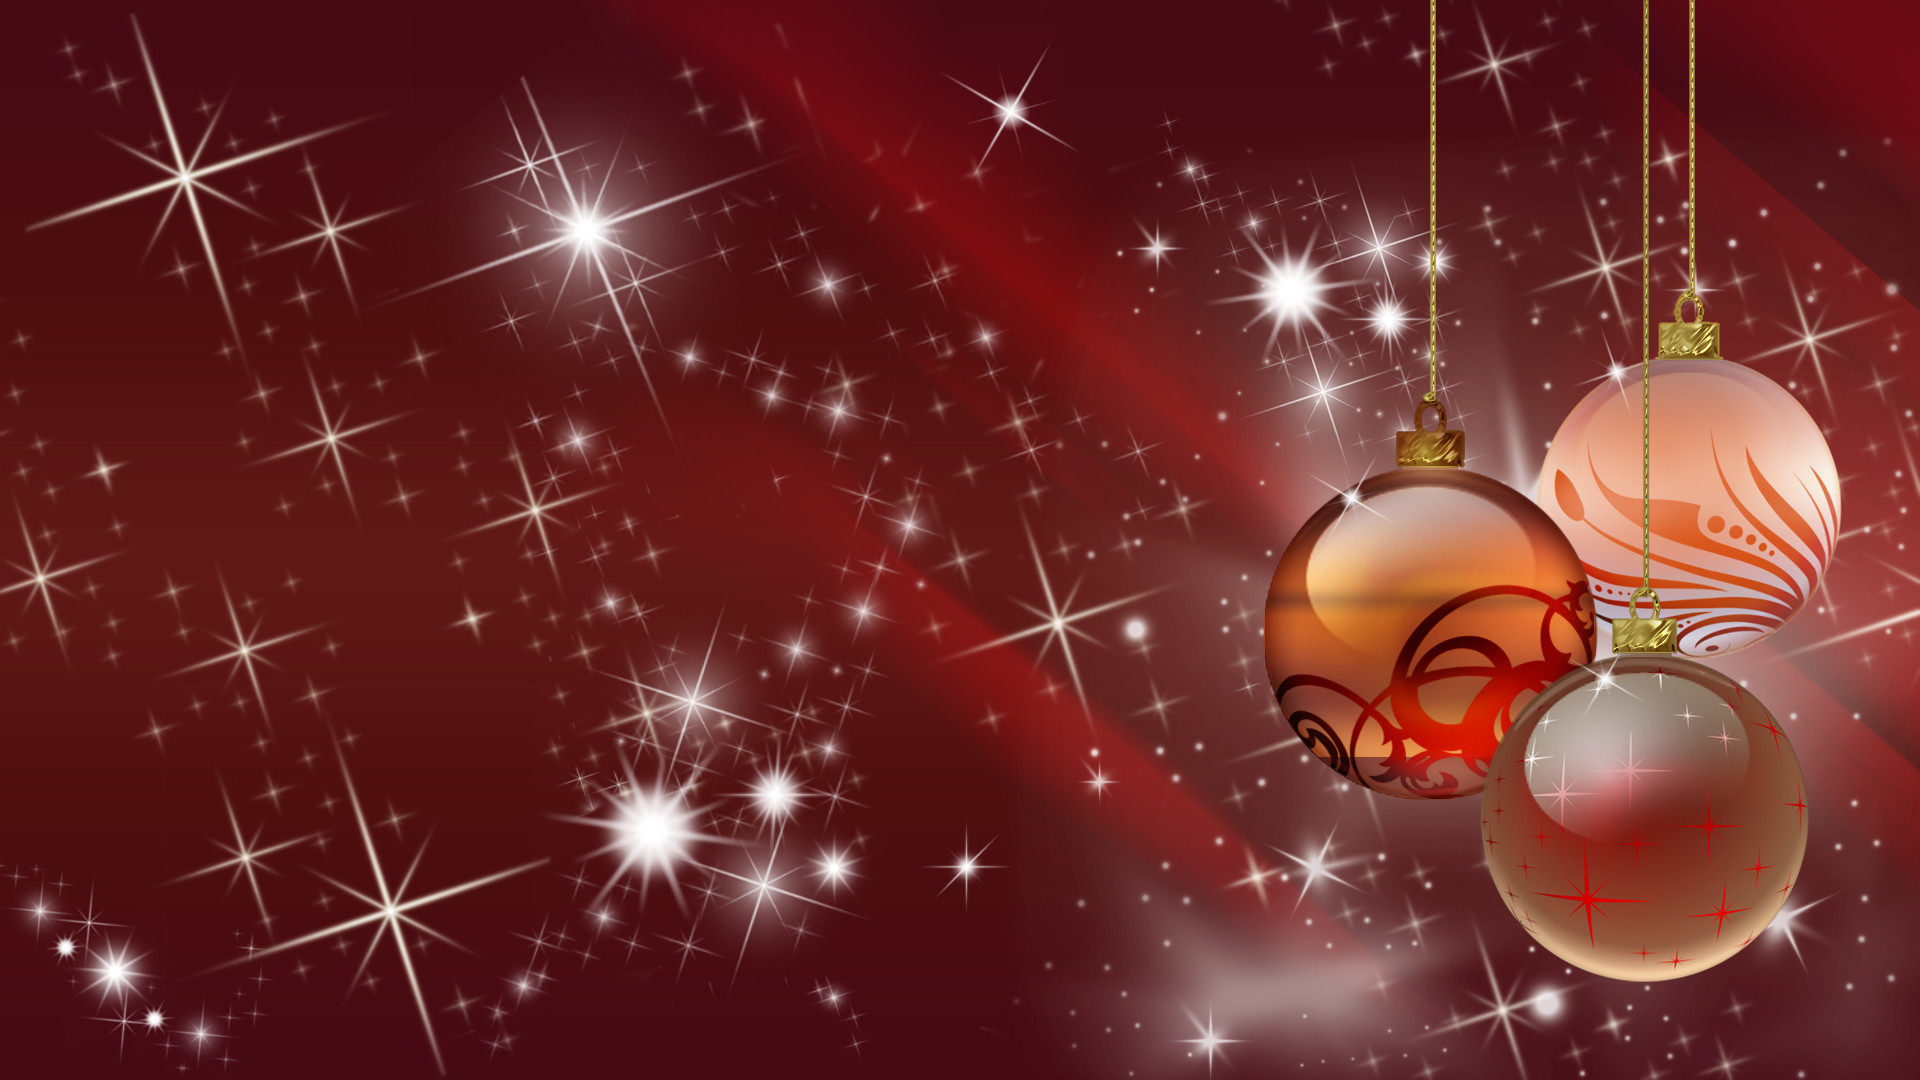 Christmas Backgrounds collection of wallpapers available for free download.  Decorate your computer desktop backgrounds with